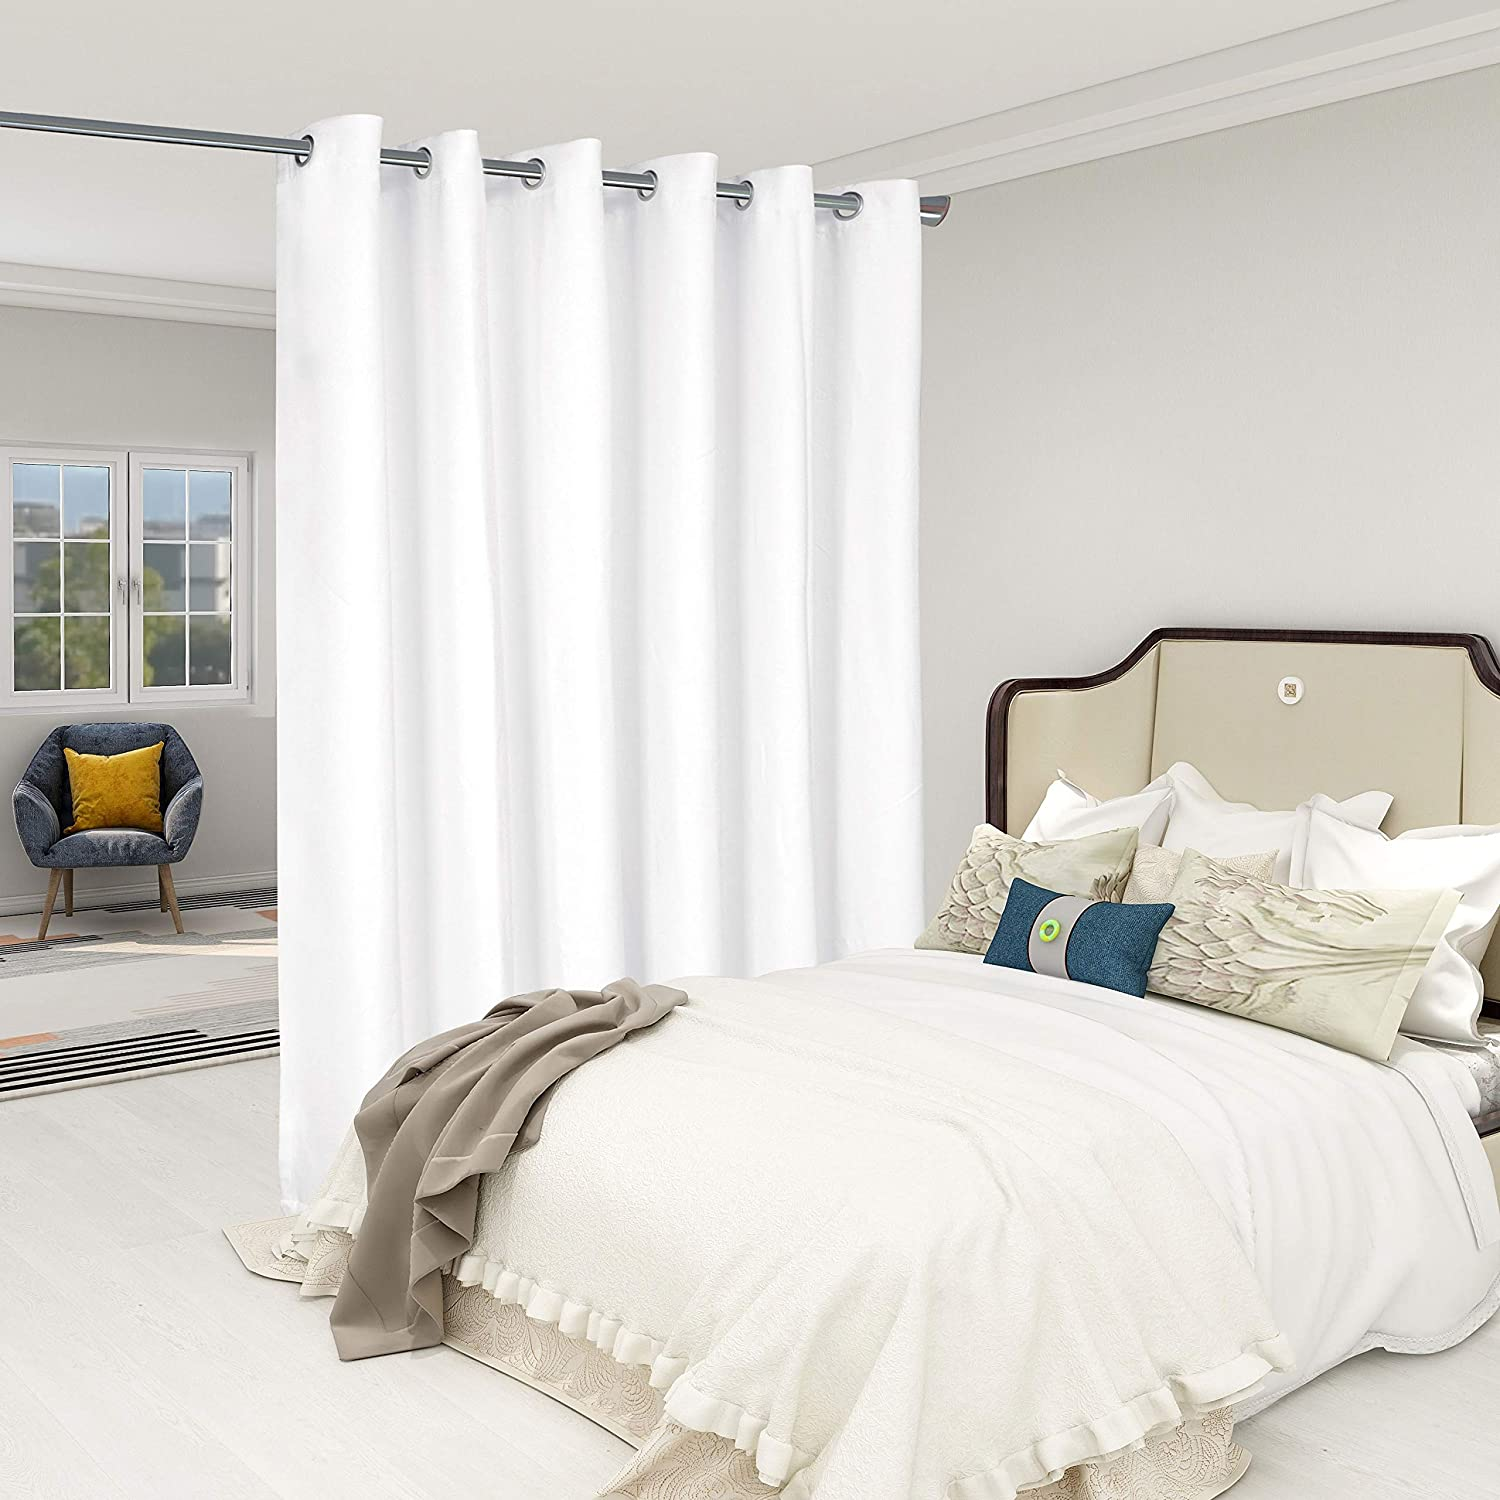 Cash special price LORDTEX Burlap Max 66% OFF Linen Look Textured - Room Divider Priva Curtains